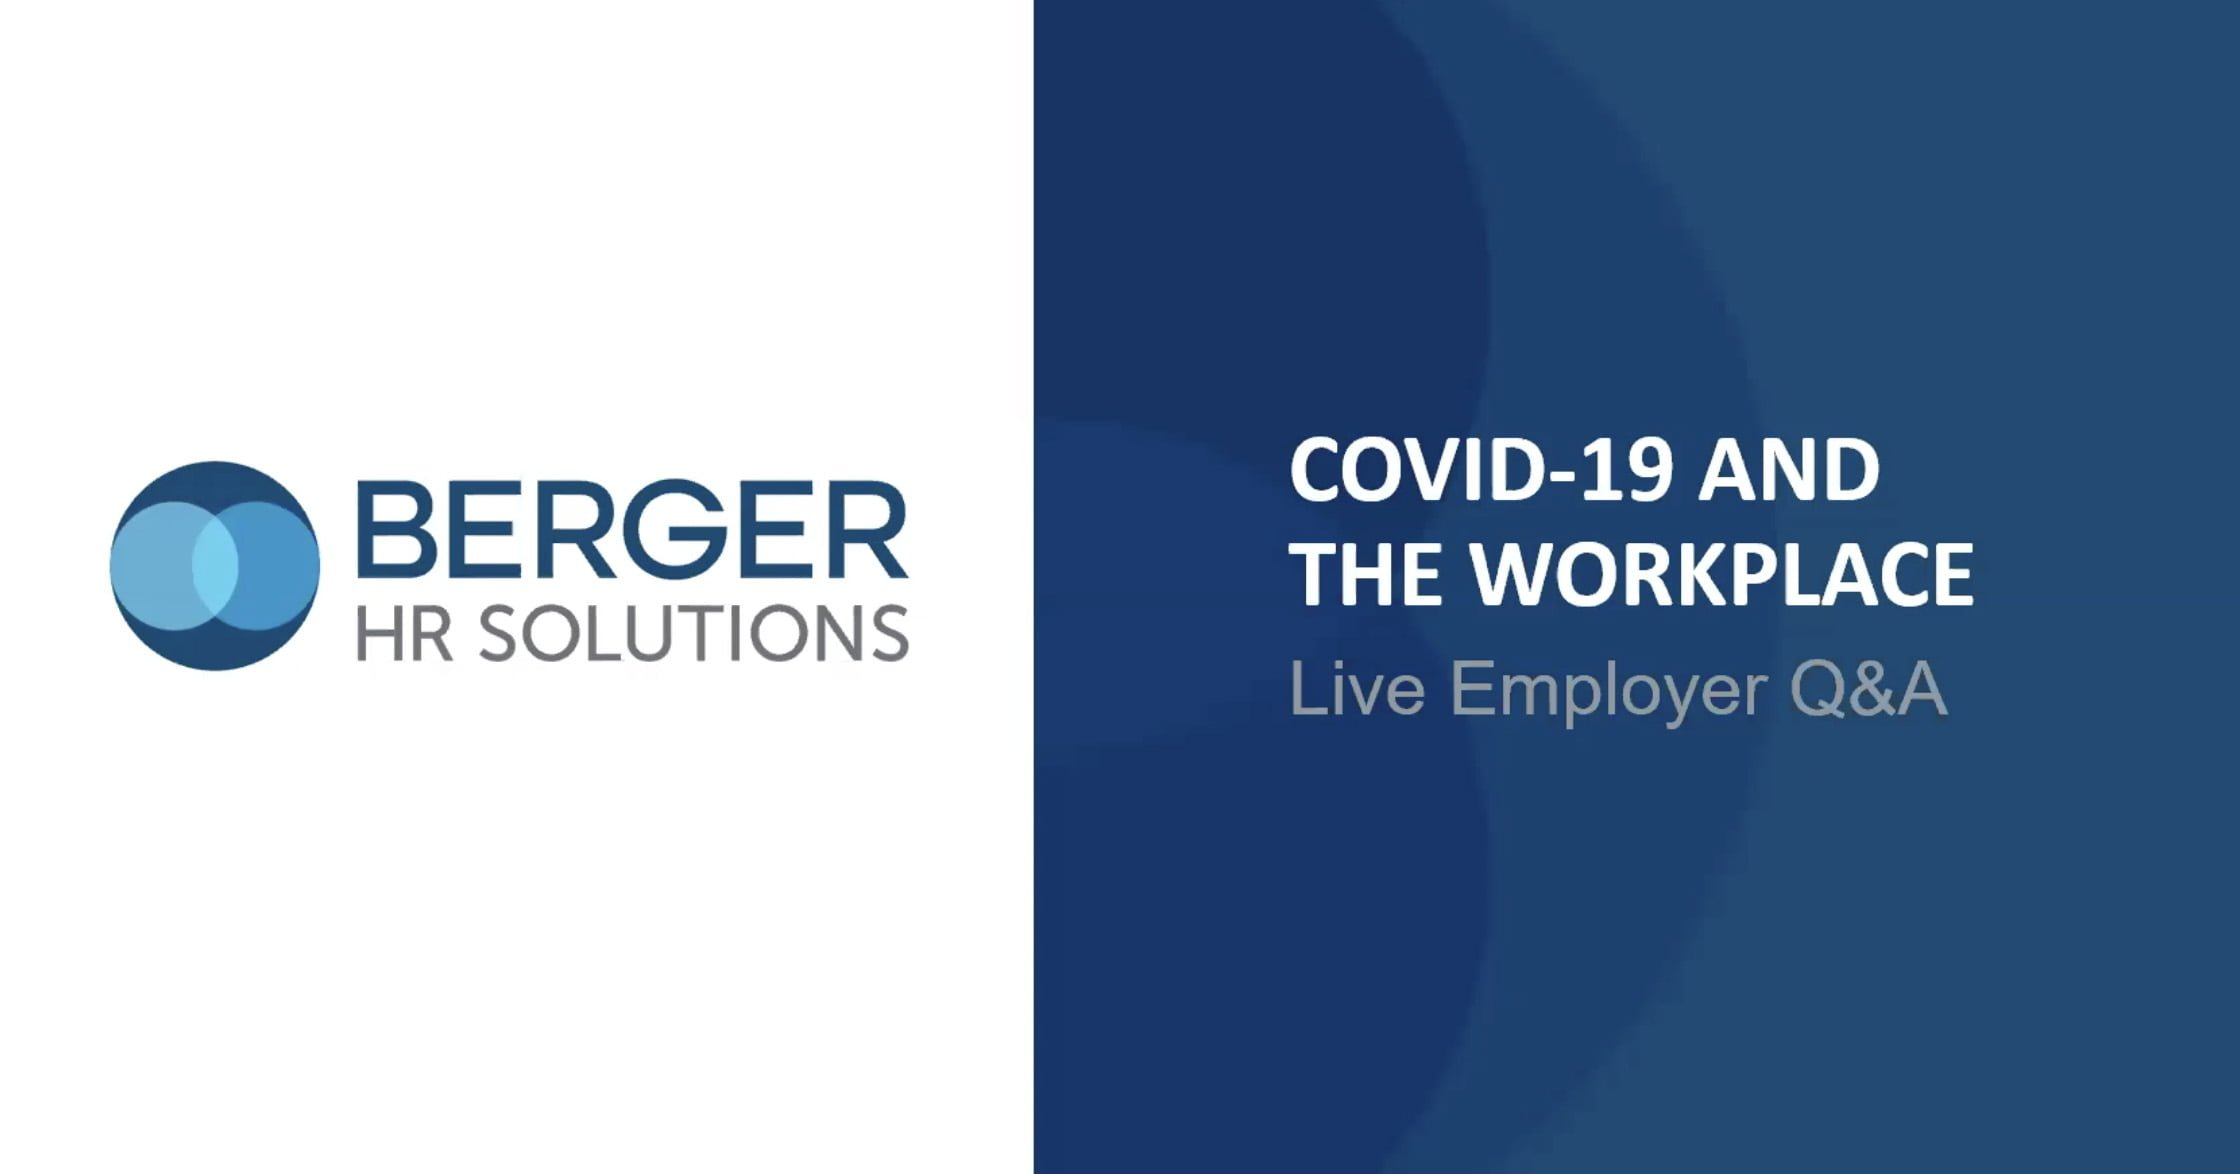 The impact of COVID-19 on the workplace is unprecedented. As an employer, you are likely facing challenges you have never faced before, receiving questions from employees you have never been asked before, and looking for creative work solutions you have never tried before. This is uncharted territory for many.